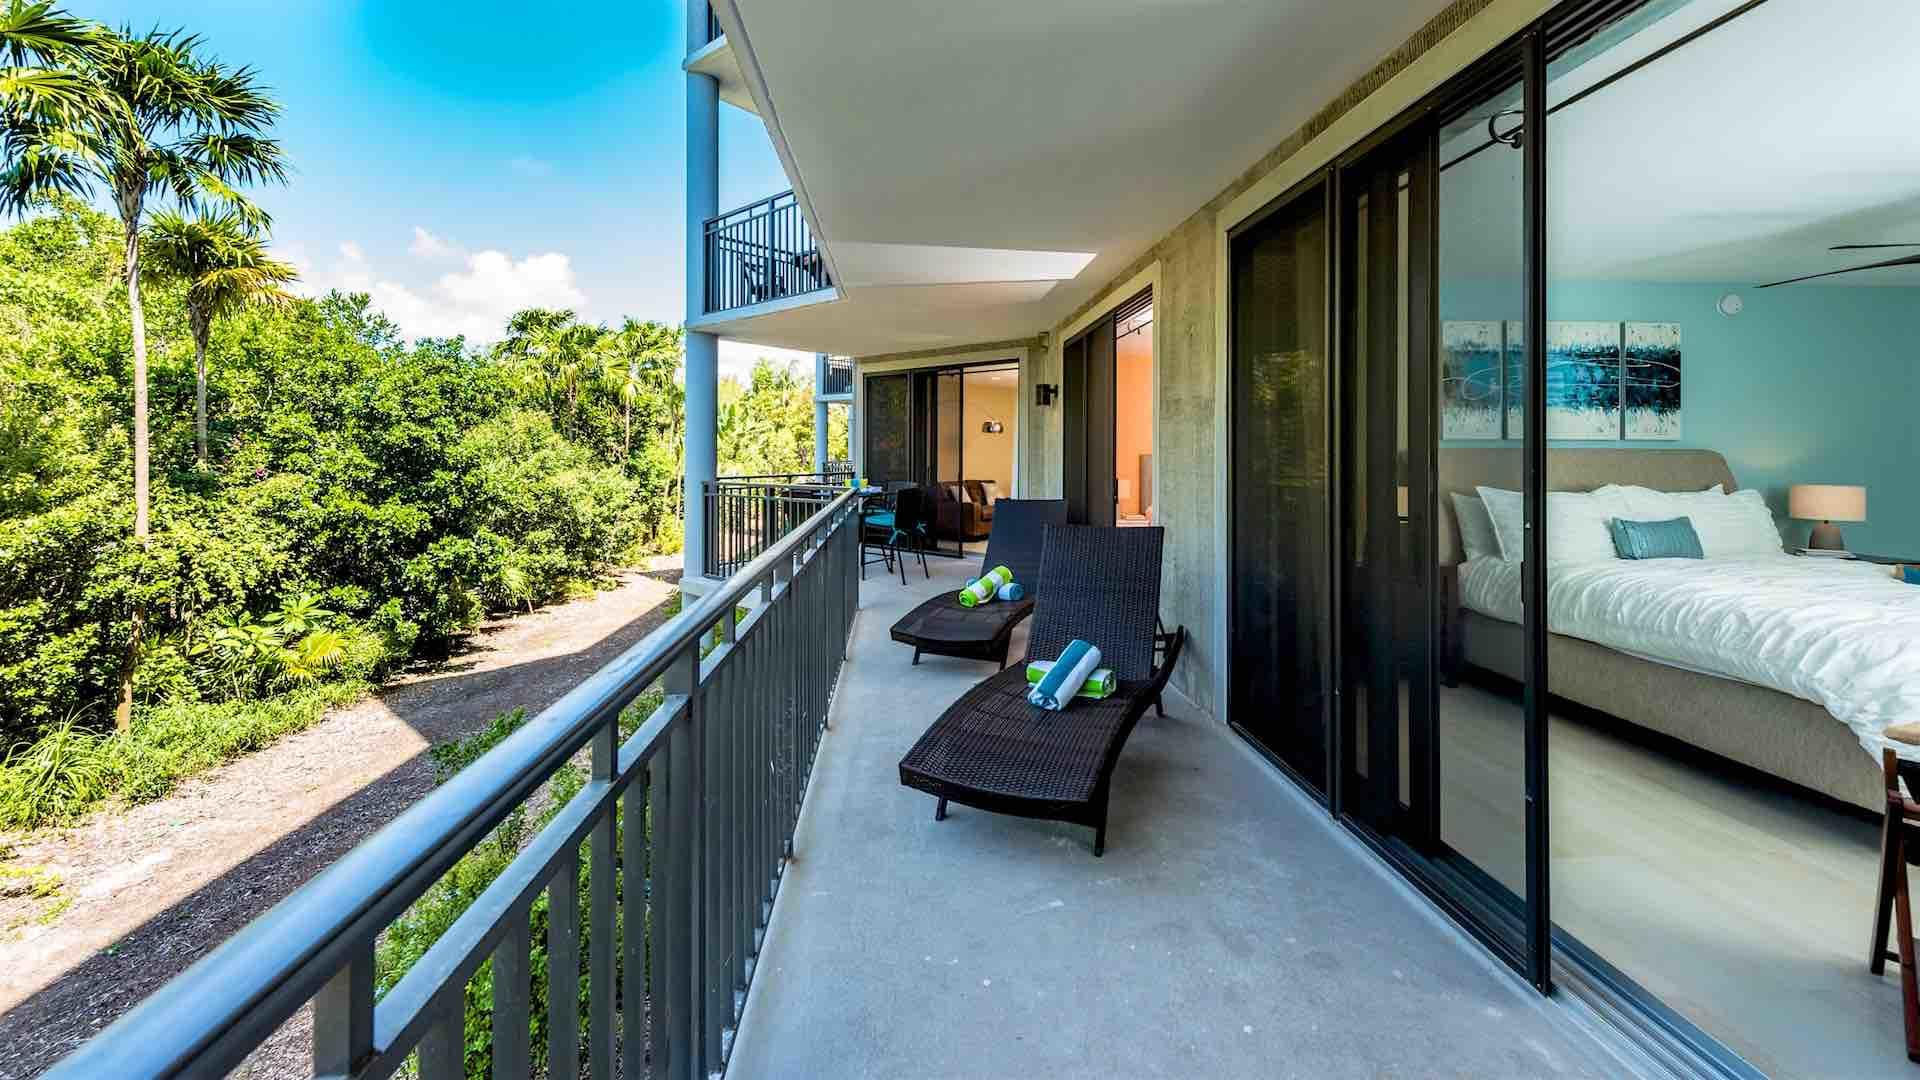 There are two chaise lounges on the spacious balcony...